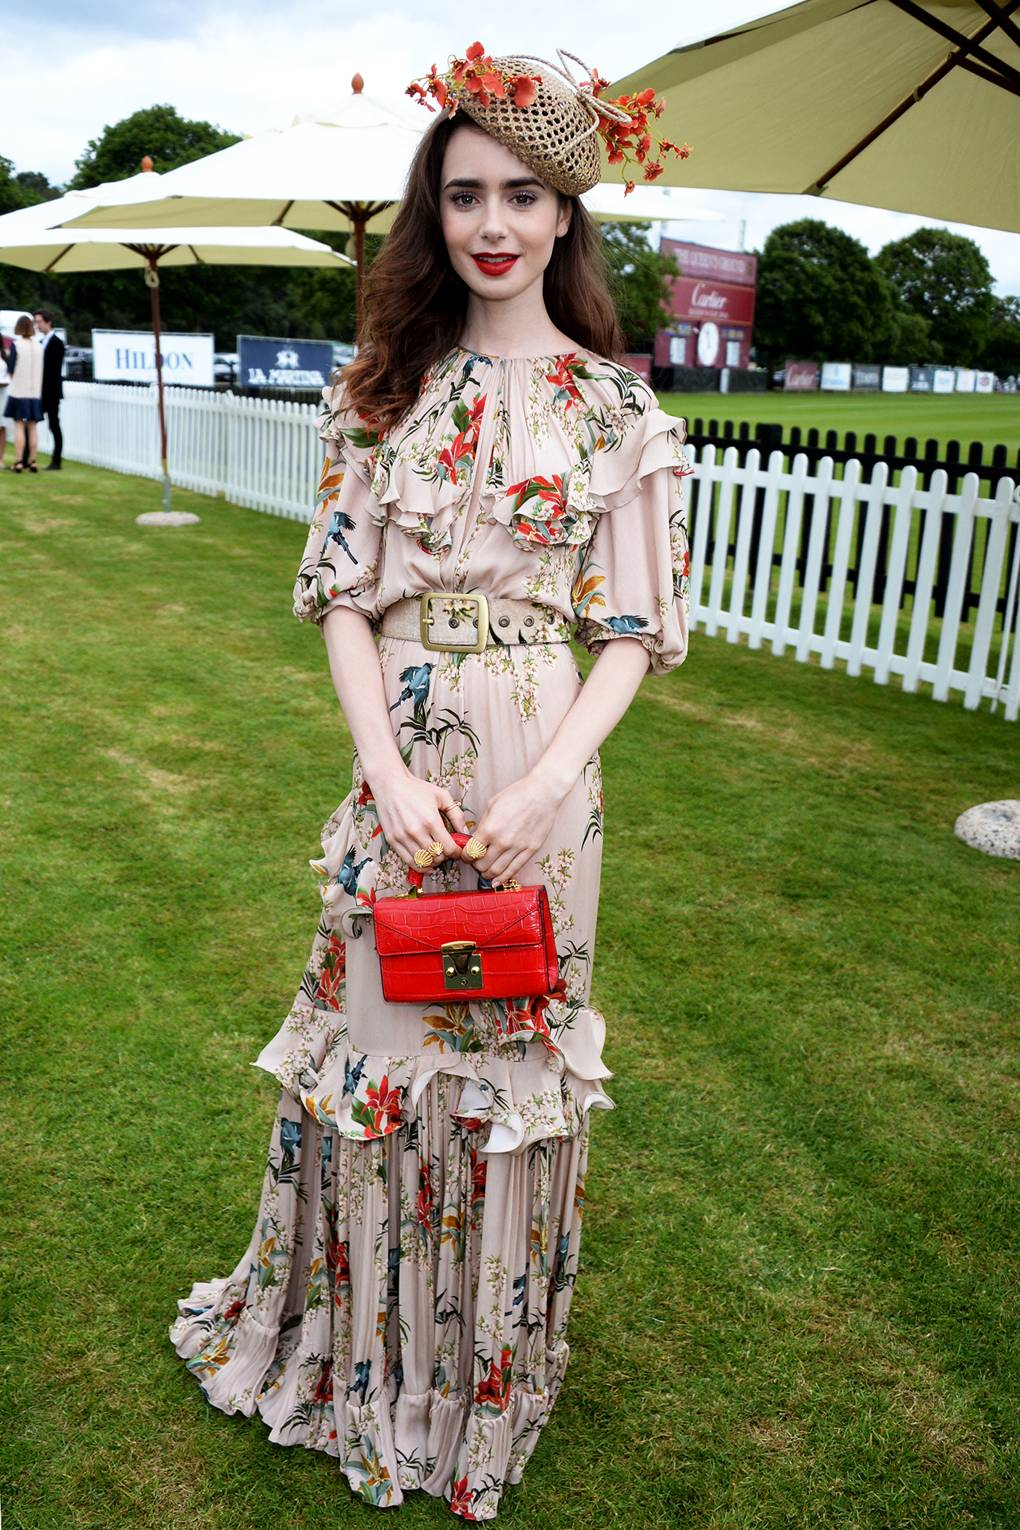 Lily Collins en el Cartier Queen's Cup Polo. Fotografía: Getty Images